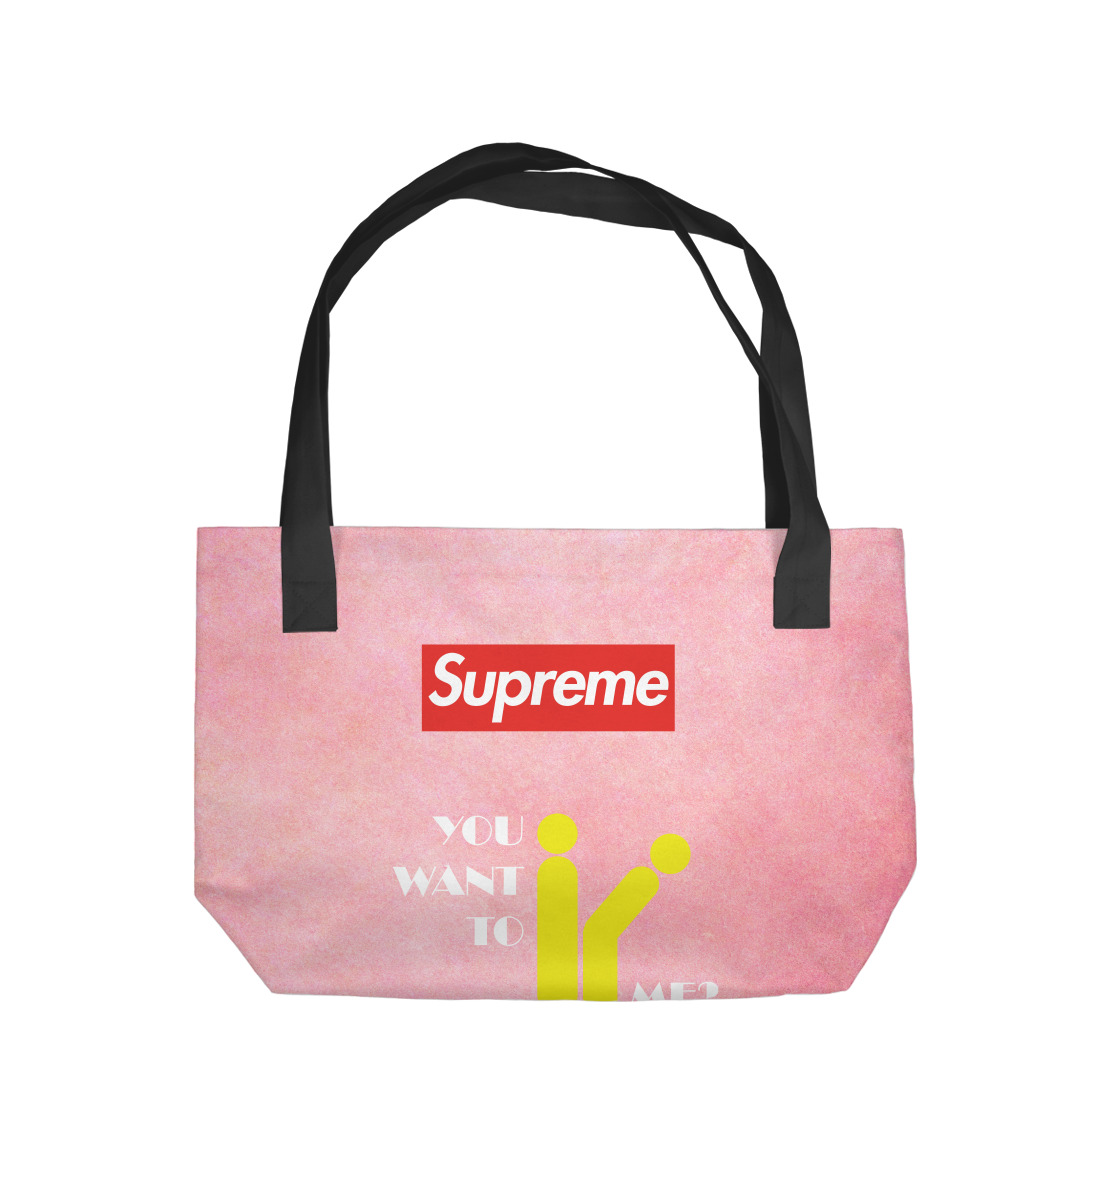 Supreme for dance party